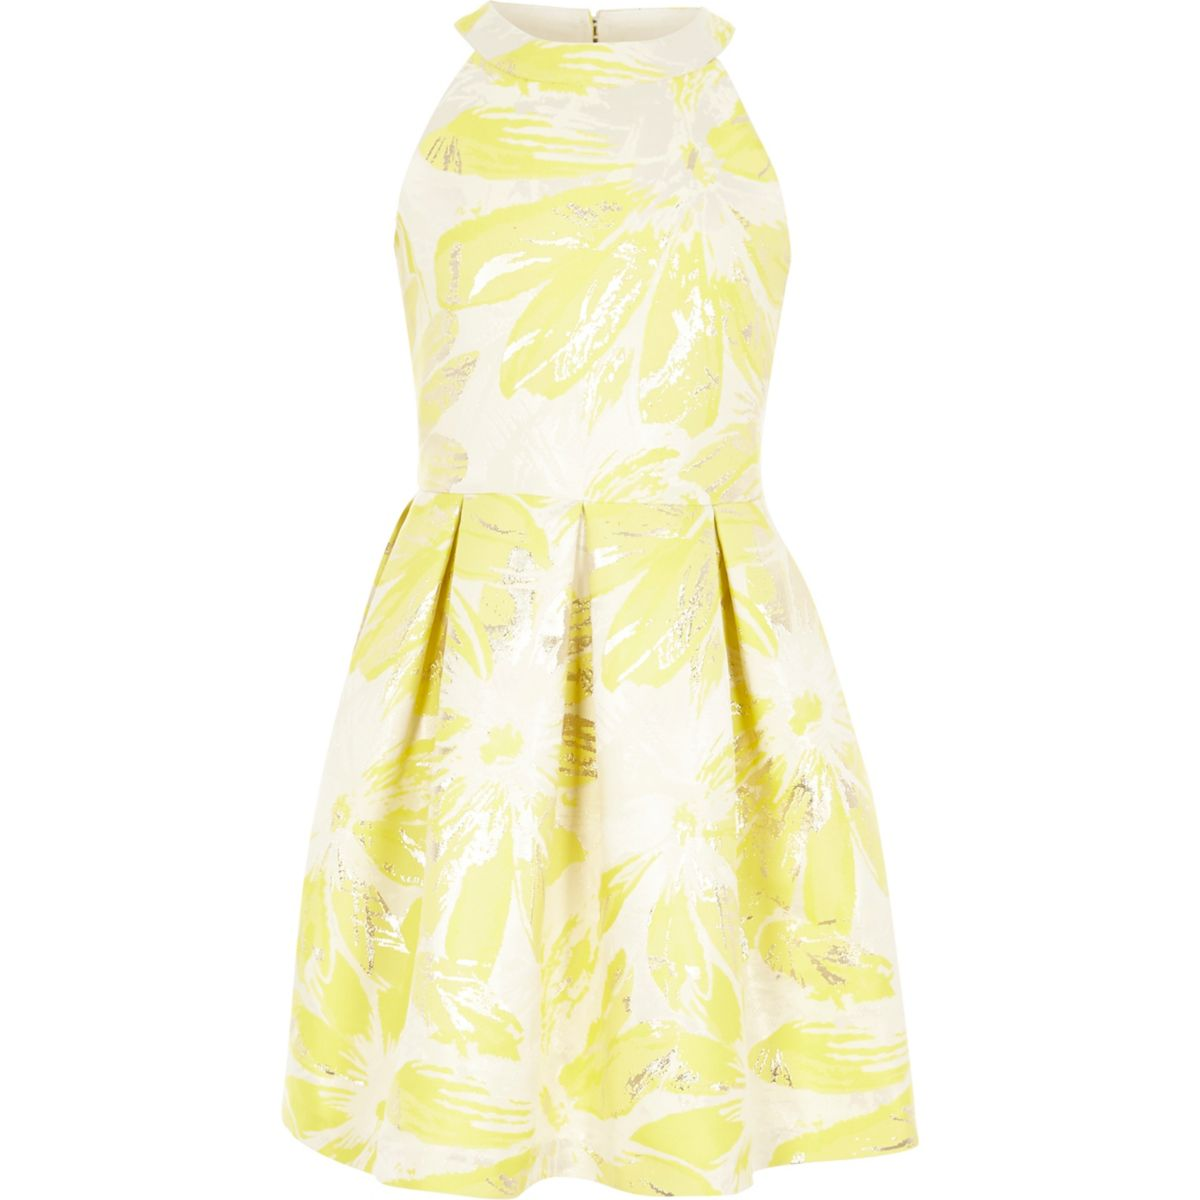 Girls yellow metallic jacquard prom dress